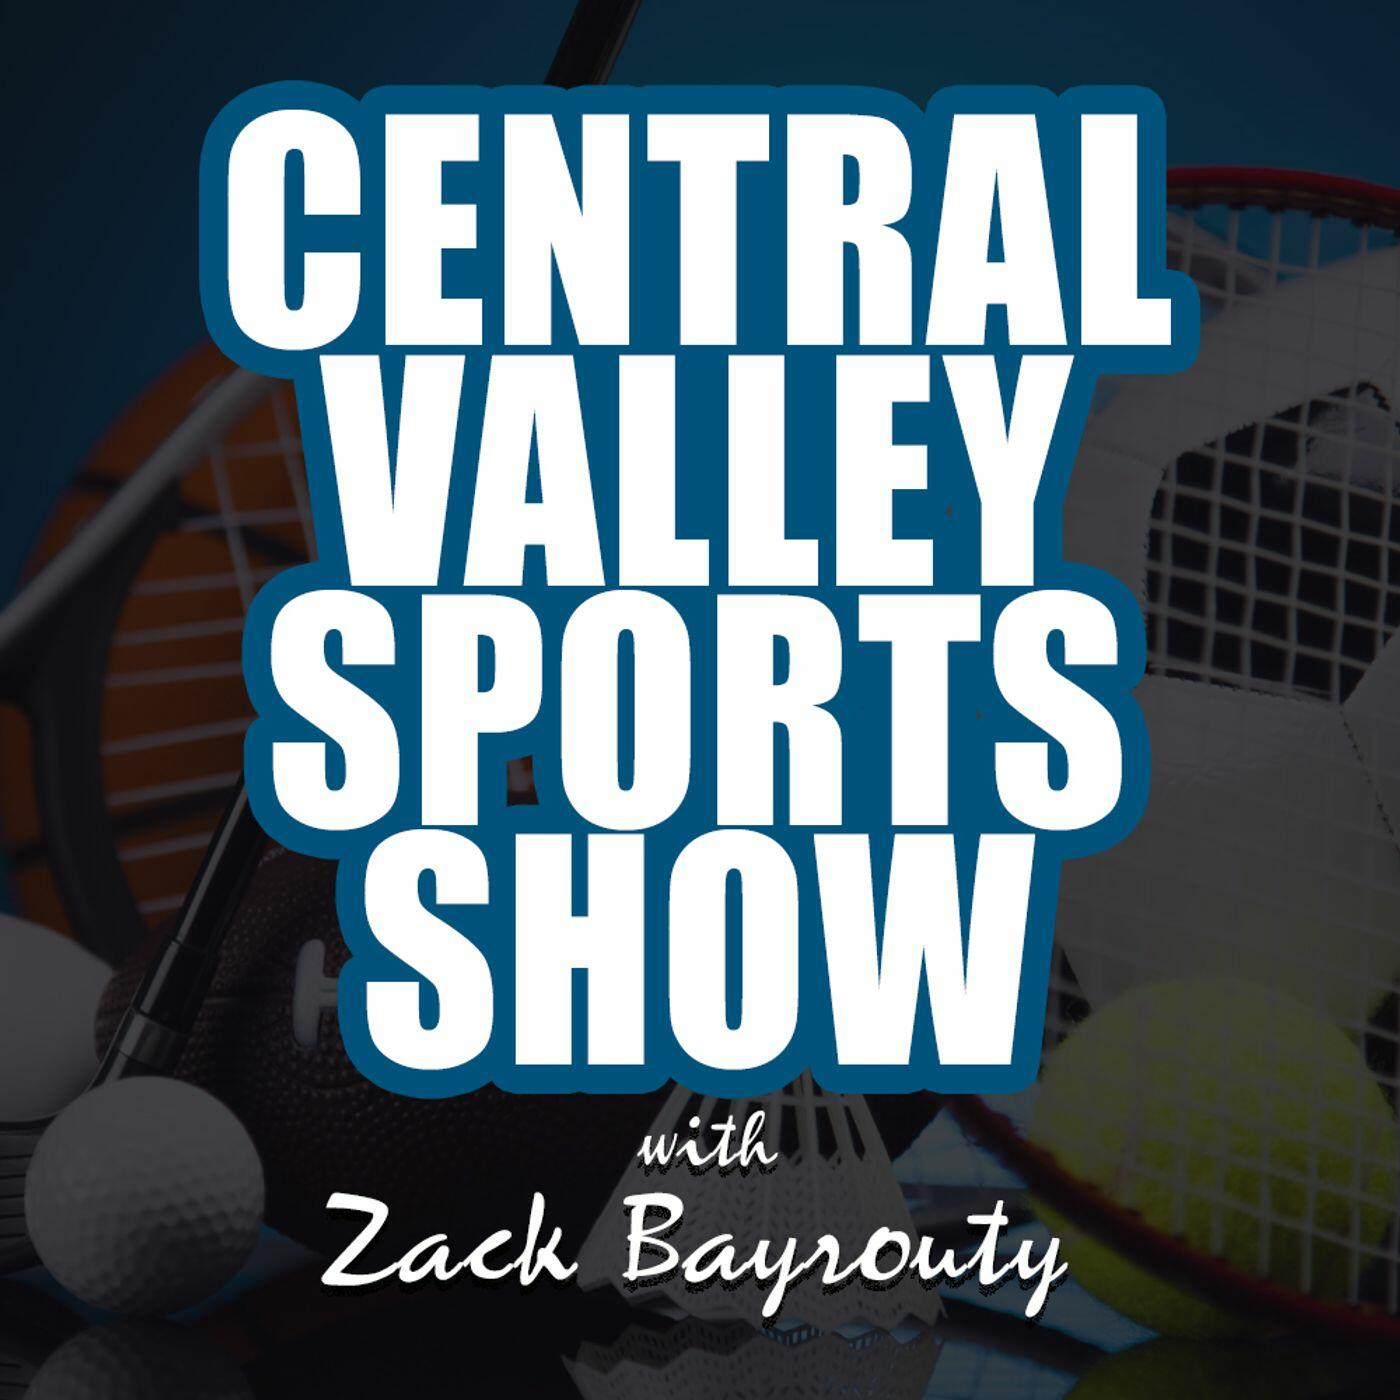 Central Valley Sports Show